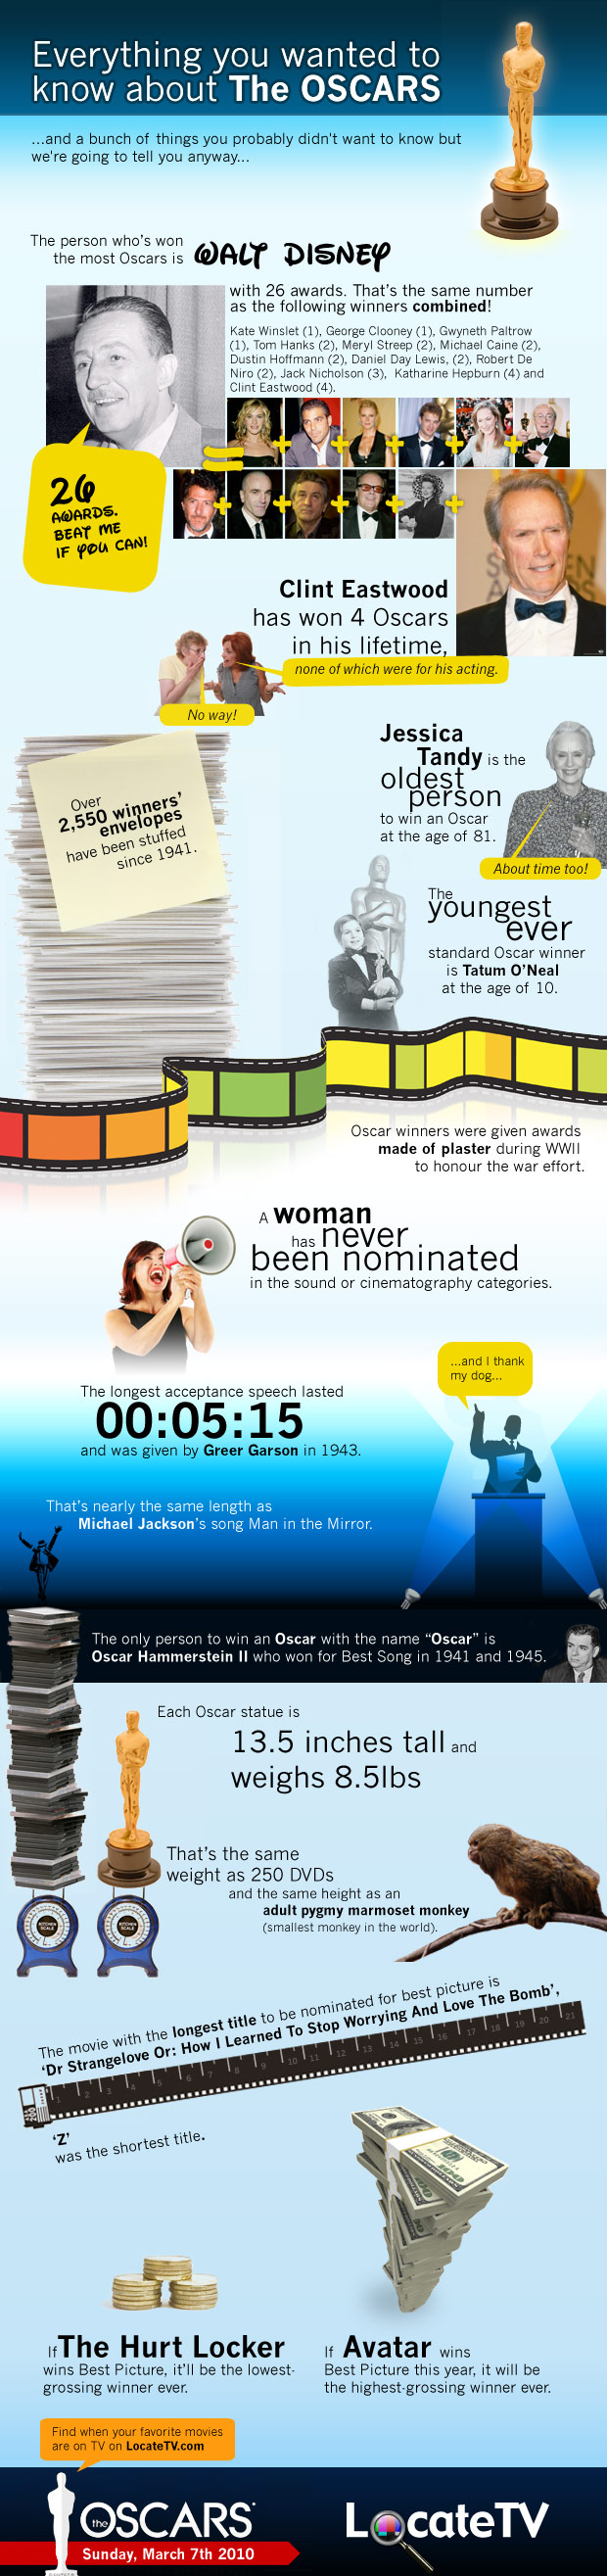 oscars-infographic-locatetv